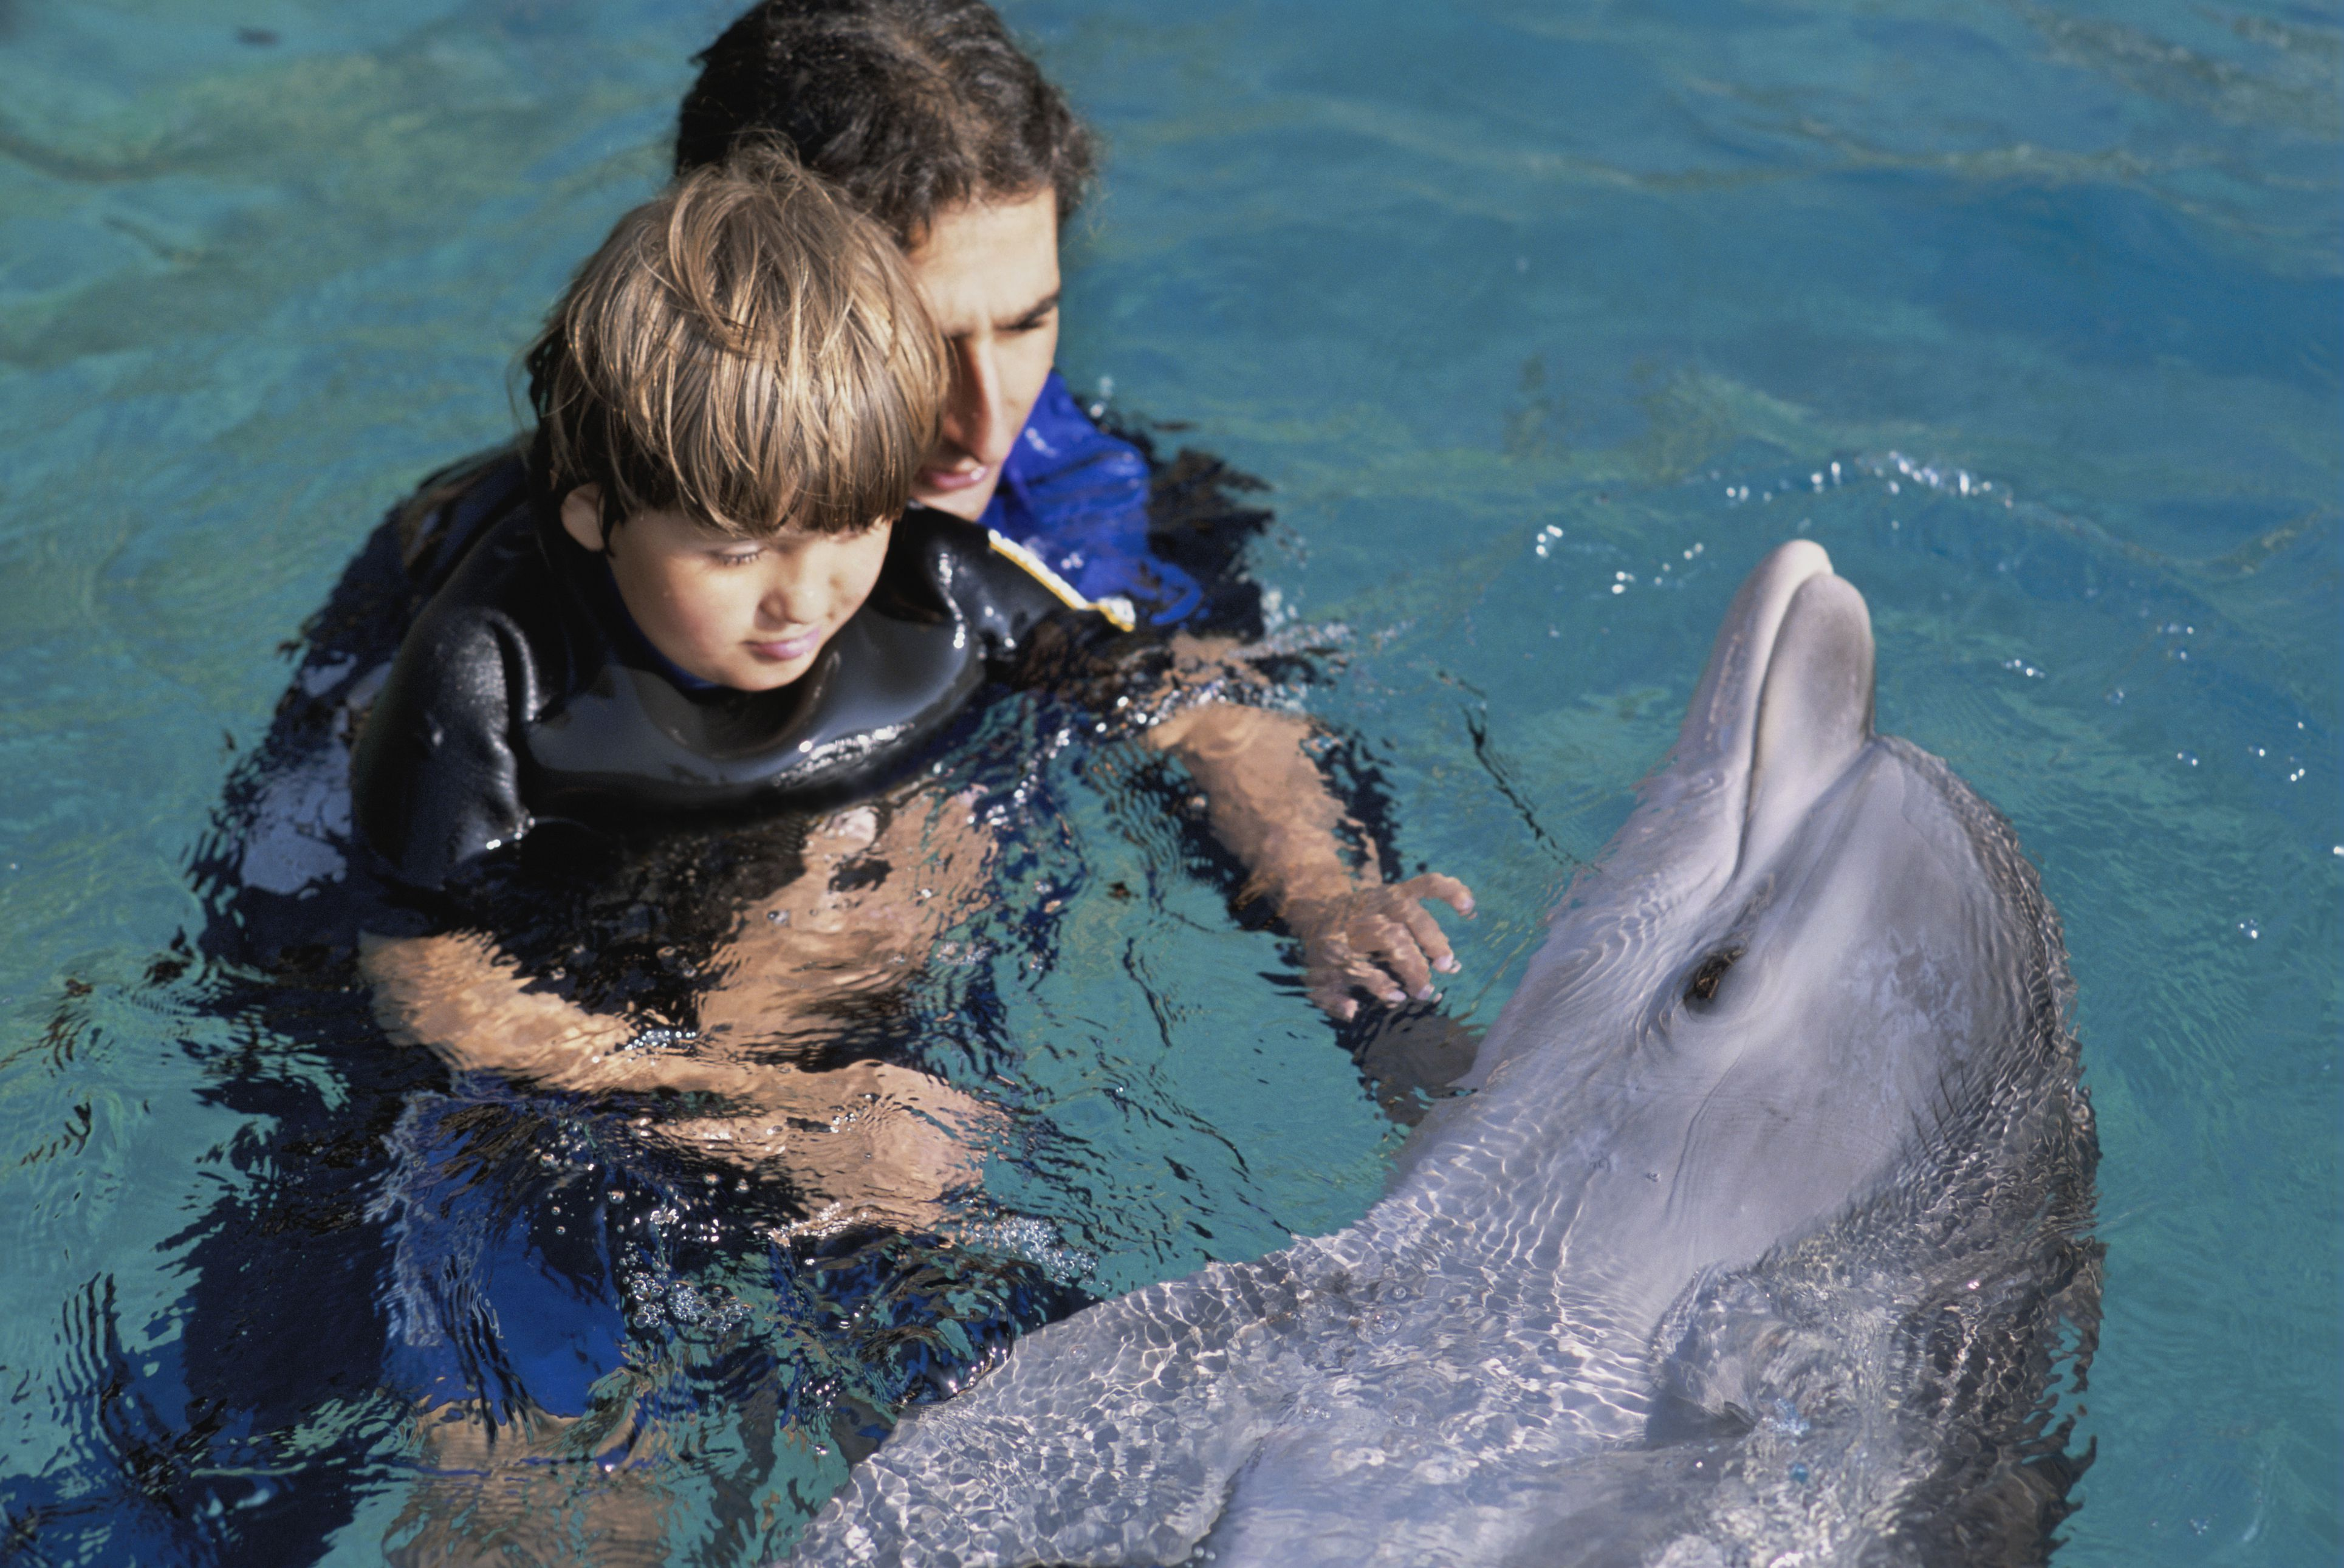 Autistic child receives therapy with dolphin trainer and bottlenose dolphin